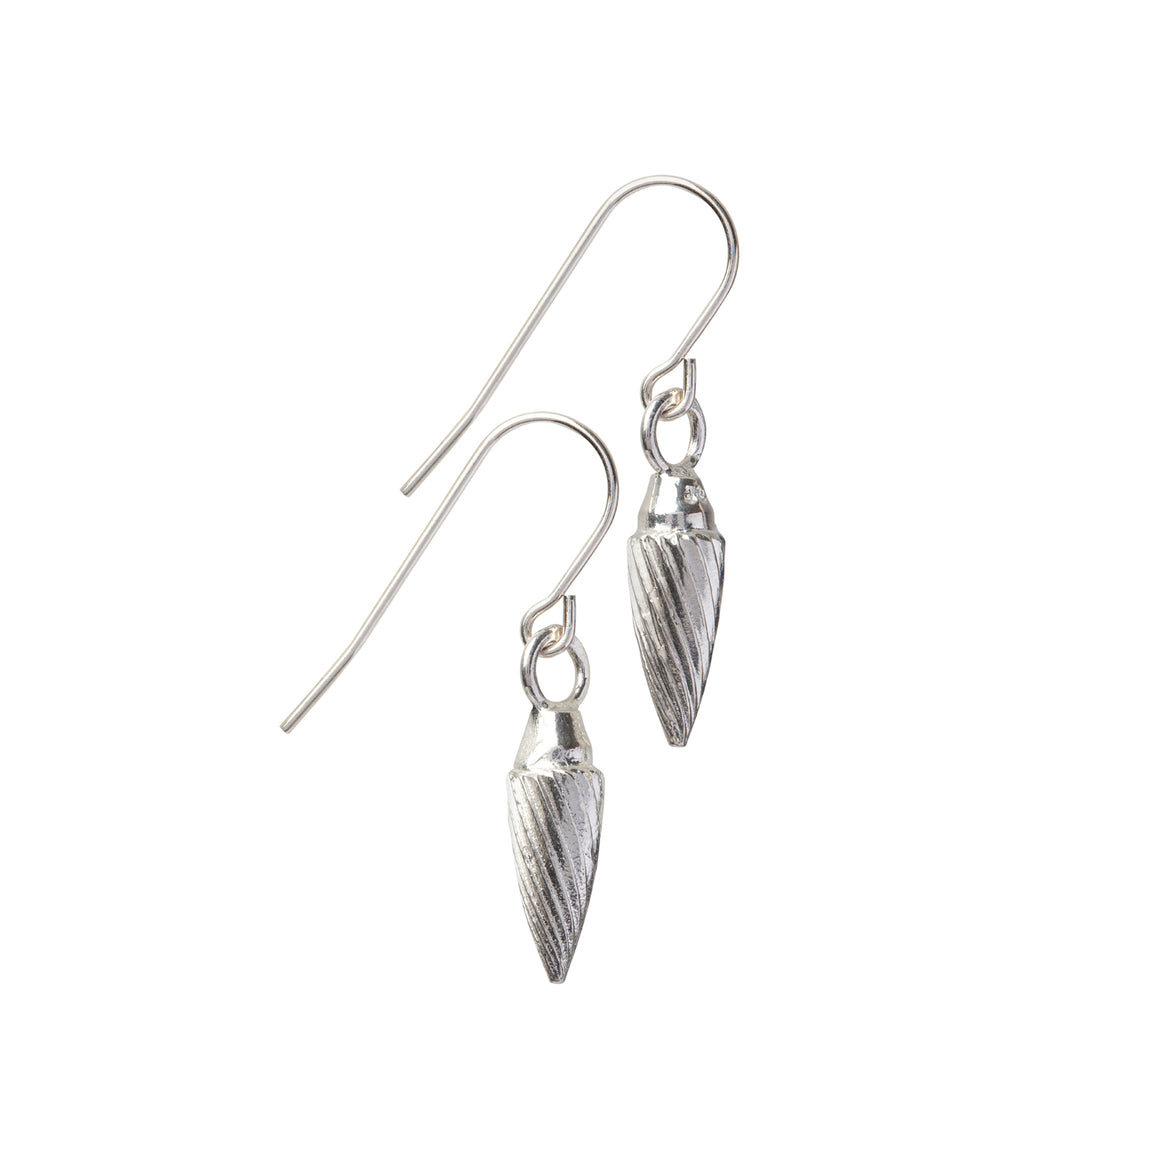 Edge Only Spiral Drop Earrings in sterling silver